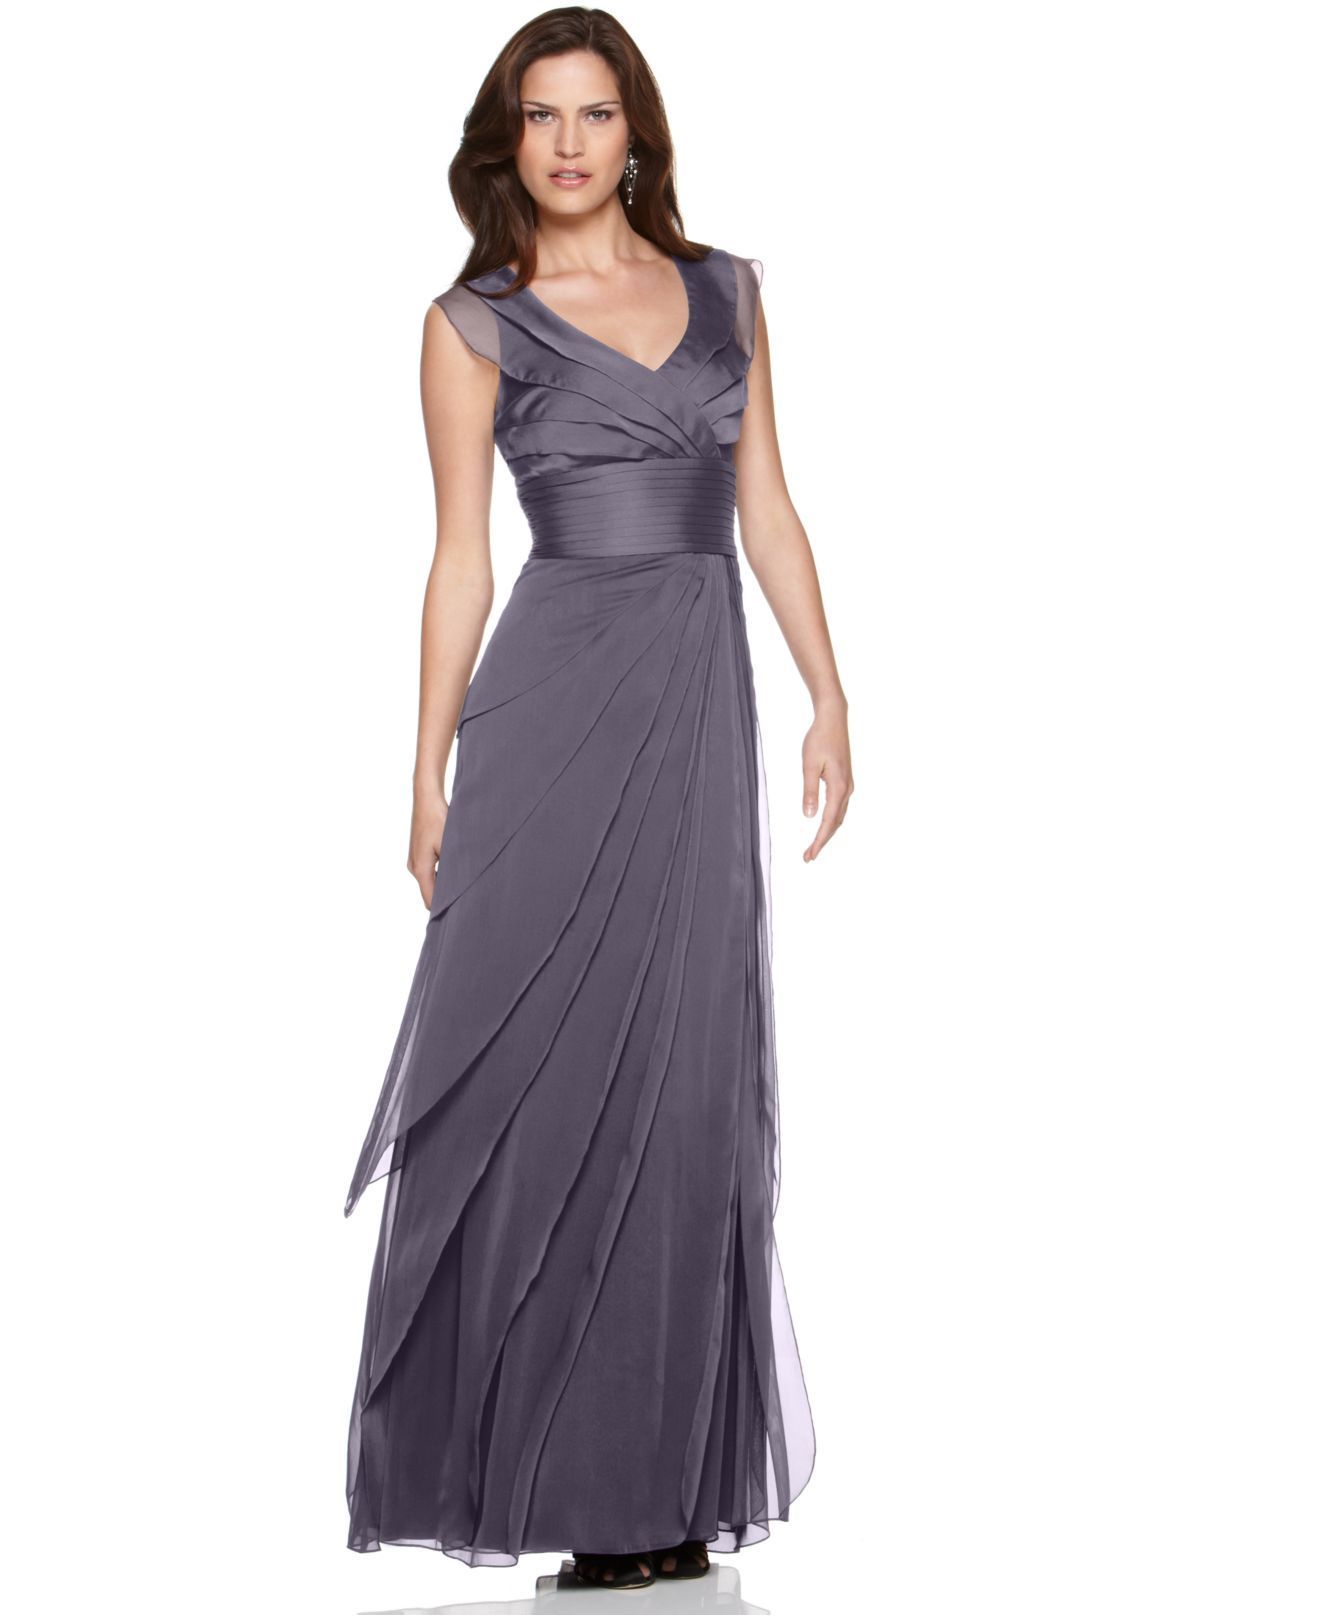 adrianna papell dress tiered evening dress womens